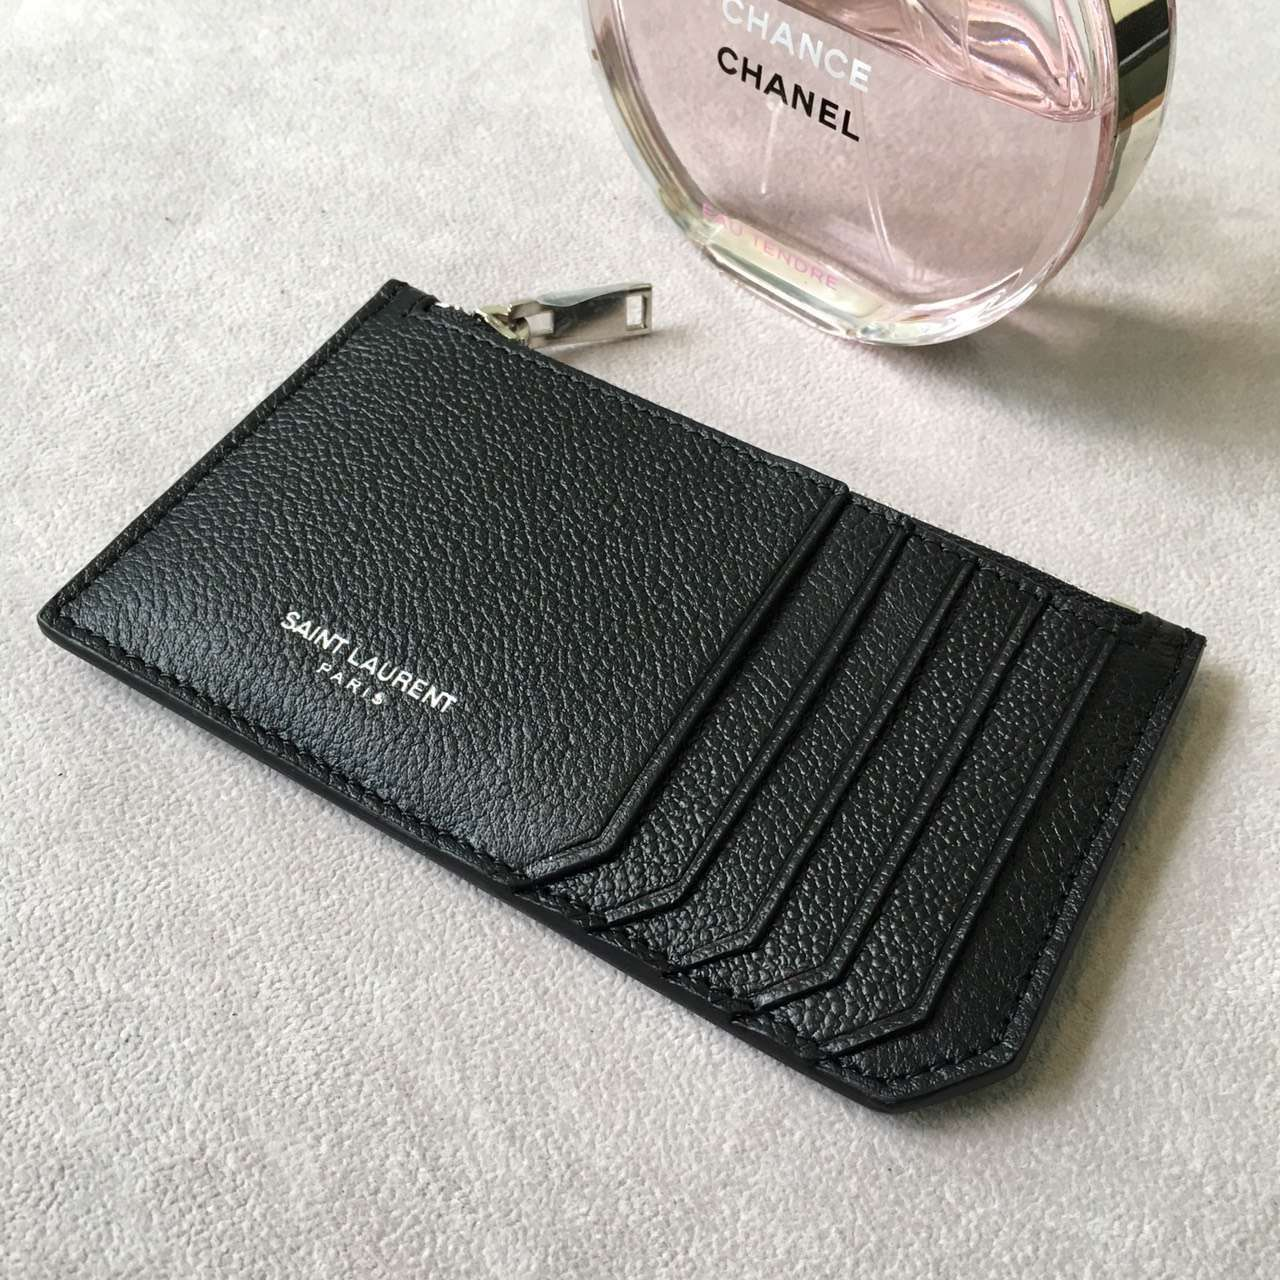 Limited Edition!2016 New Saint Laurent Small Leather Goods Cheap Sale-Saint Laurent Classic Paris 5 Fragments Zip Pouch in Black Leather - Click Image to Close